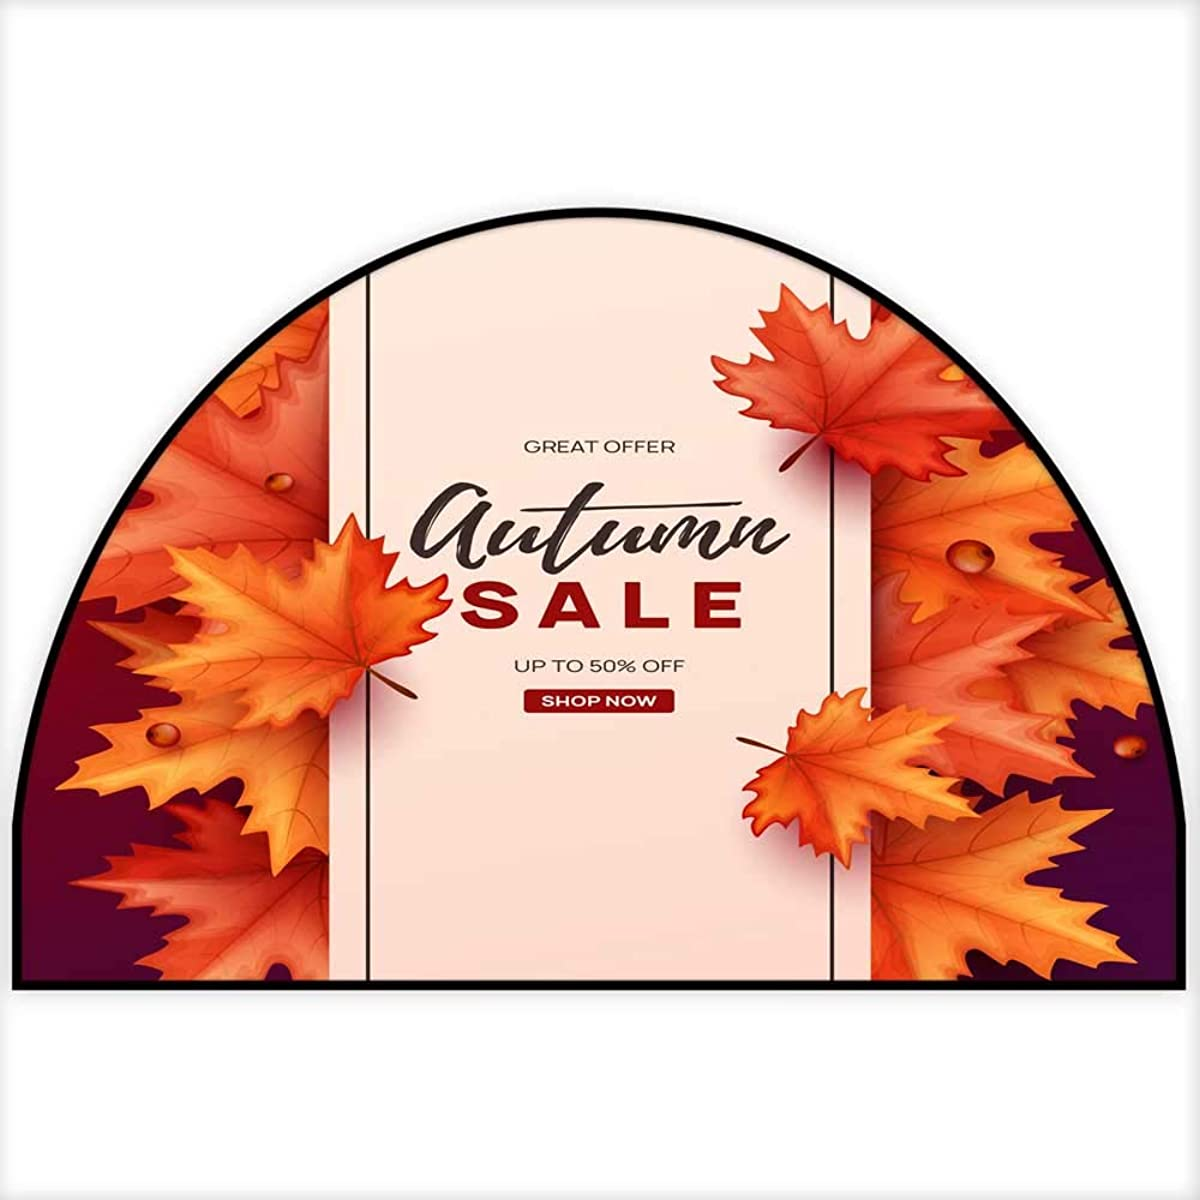 Hua Wu Chou Half Round Coir Door mathalf Round Dog mat W30 x H18 INCH Autumn Banner with Colorful leaves10